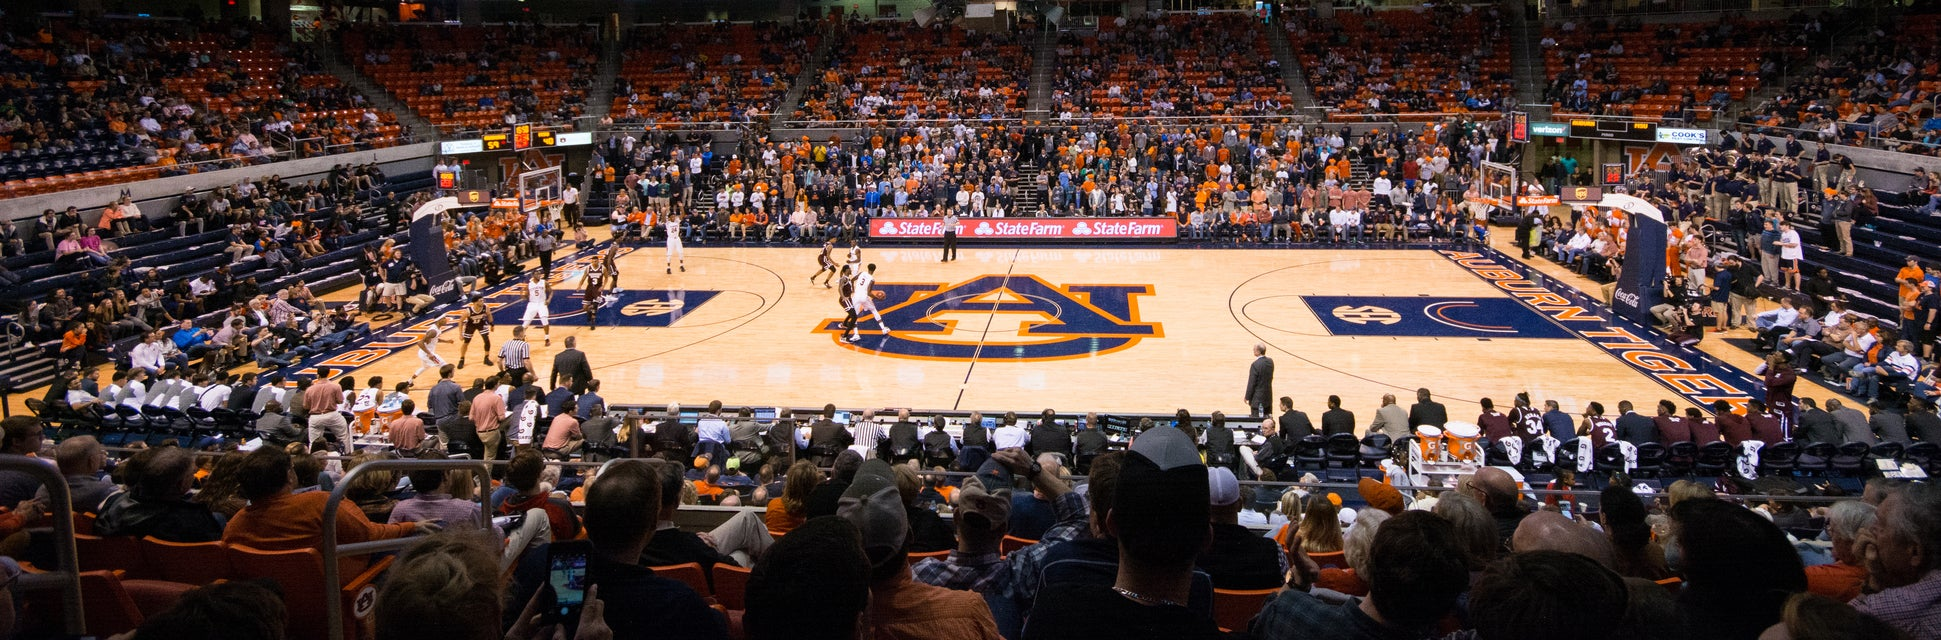 Auburn Basketball Tickets